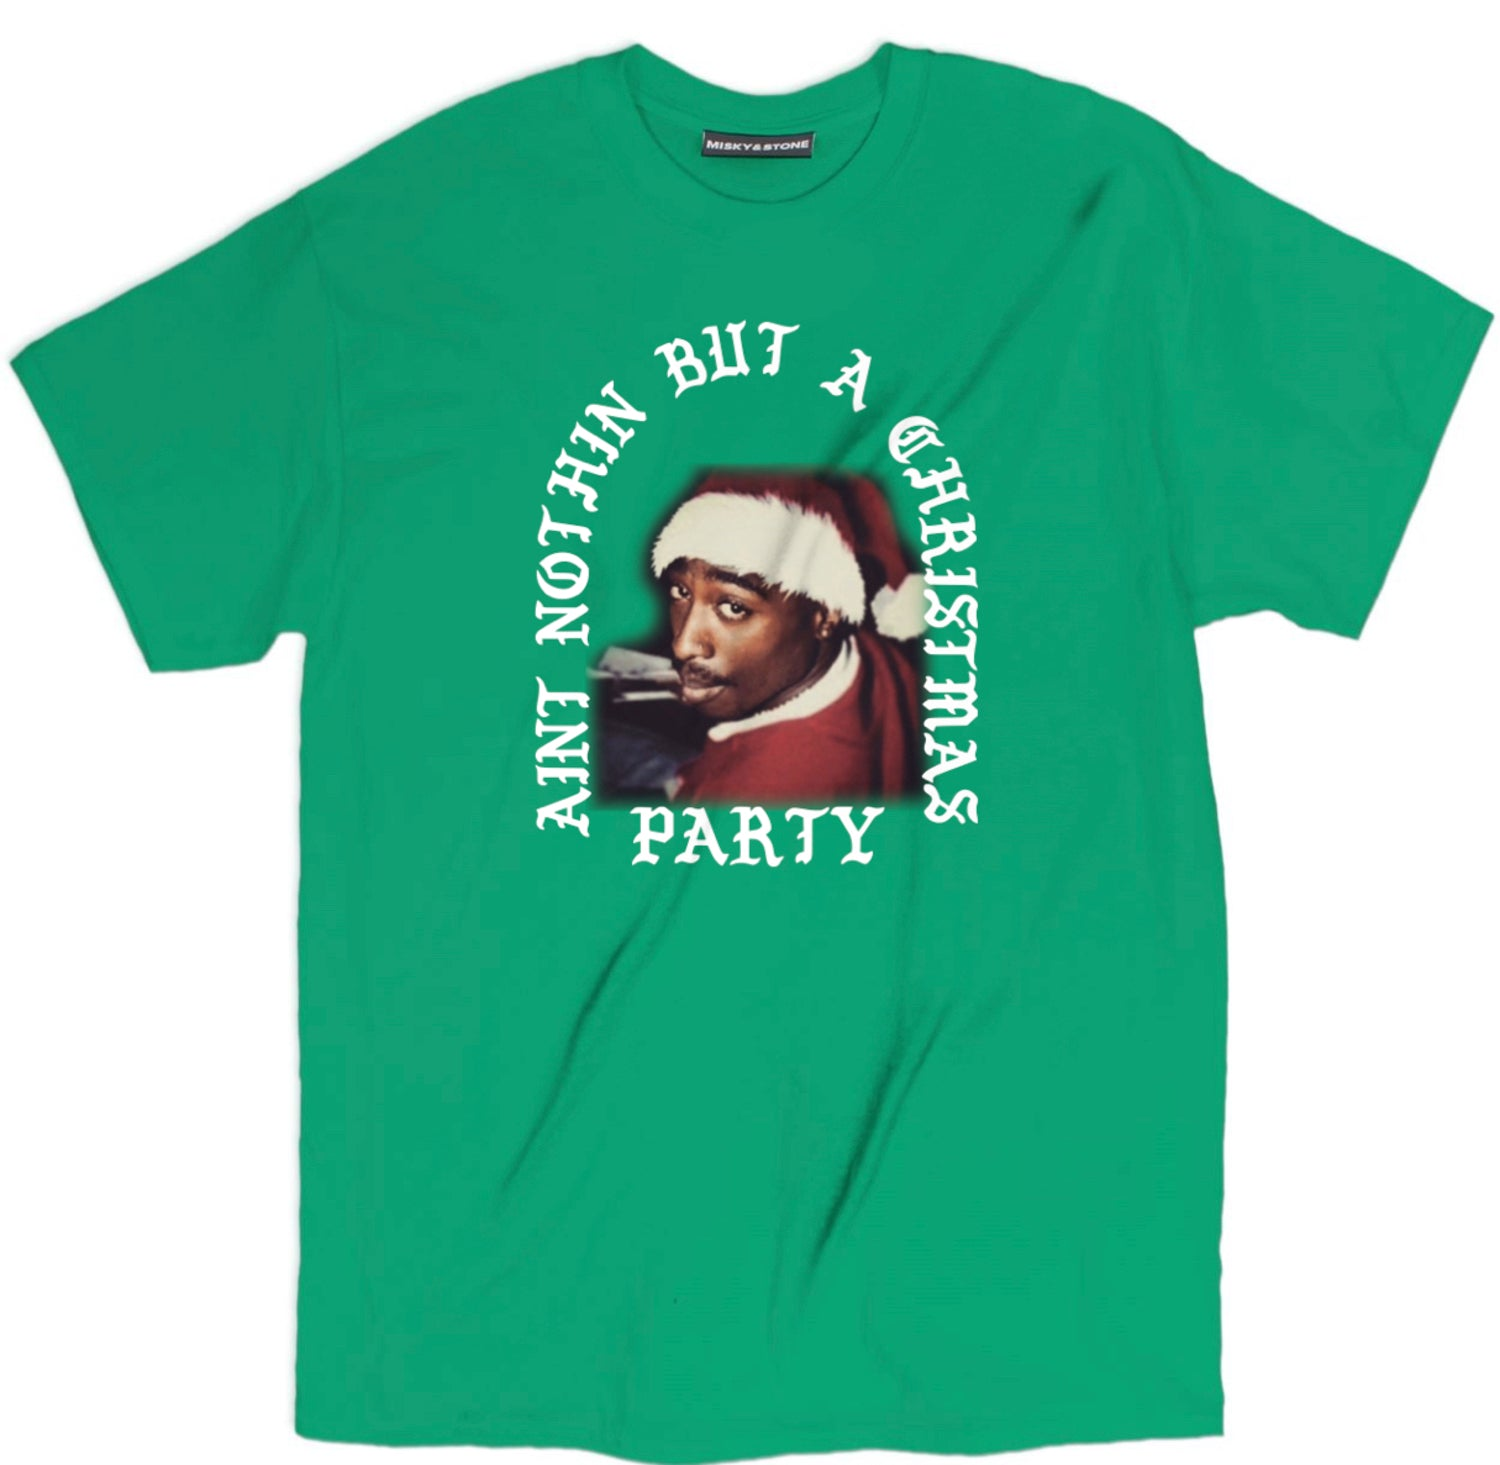 2pac Christmas Party Tee